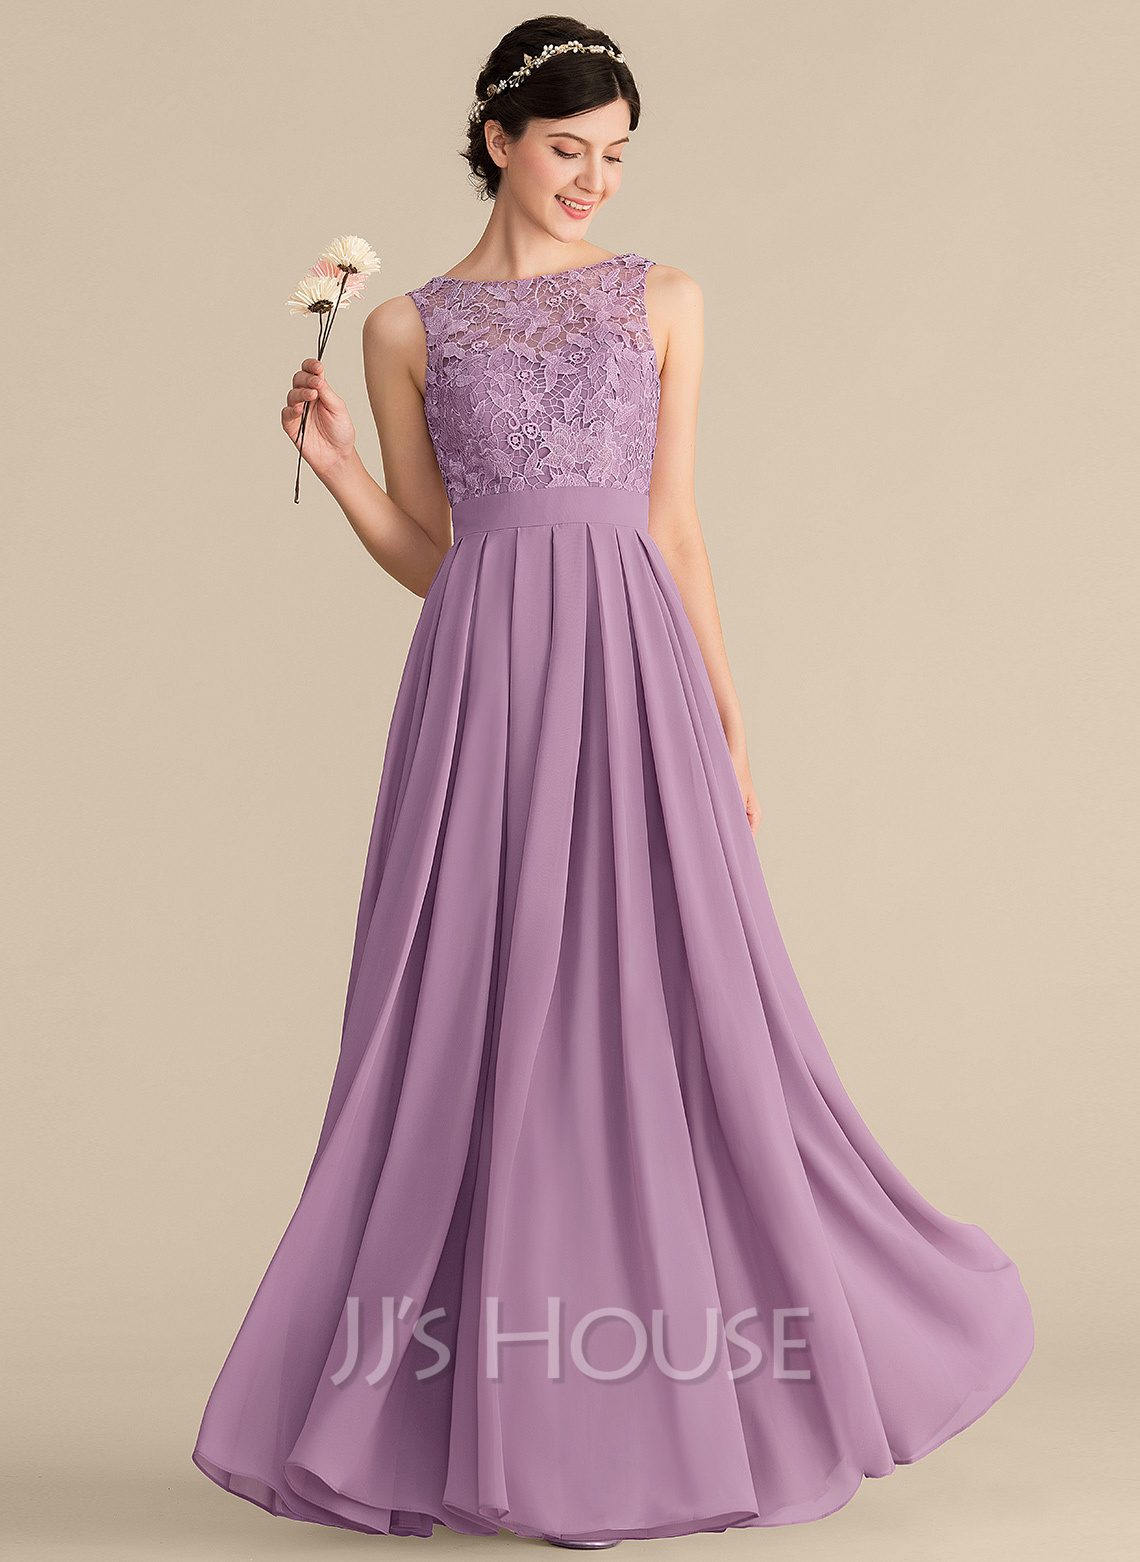 Scoop Neck Floor-Length Chiffon Lace Bridesmaid Dress With Ruffle